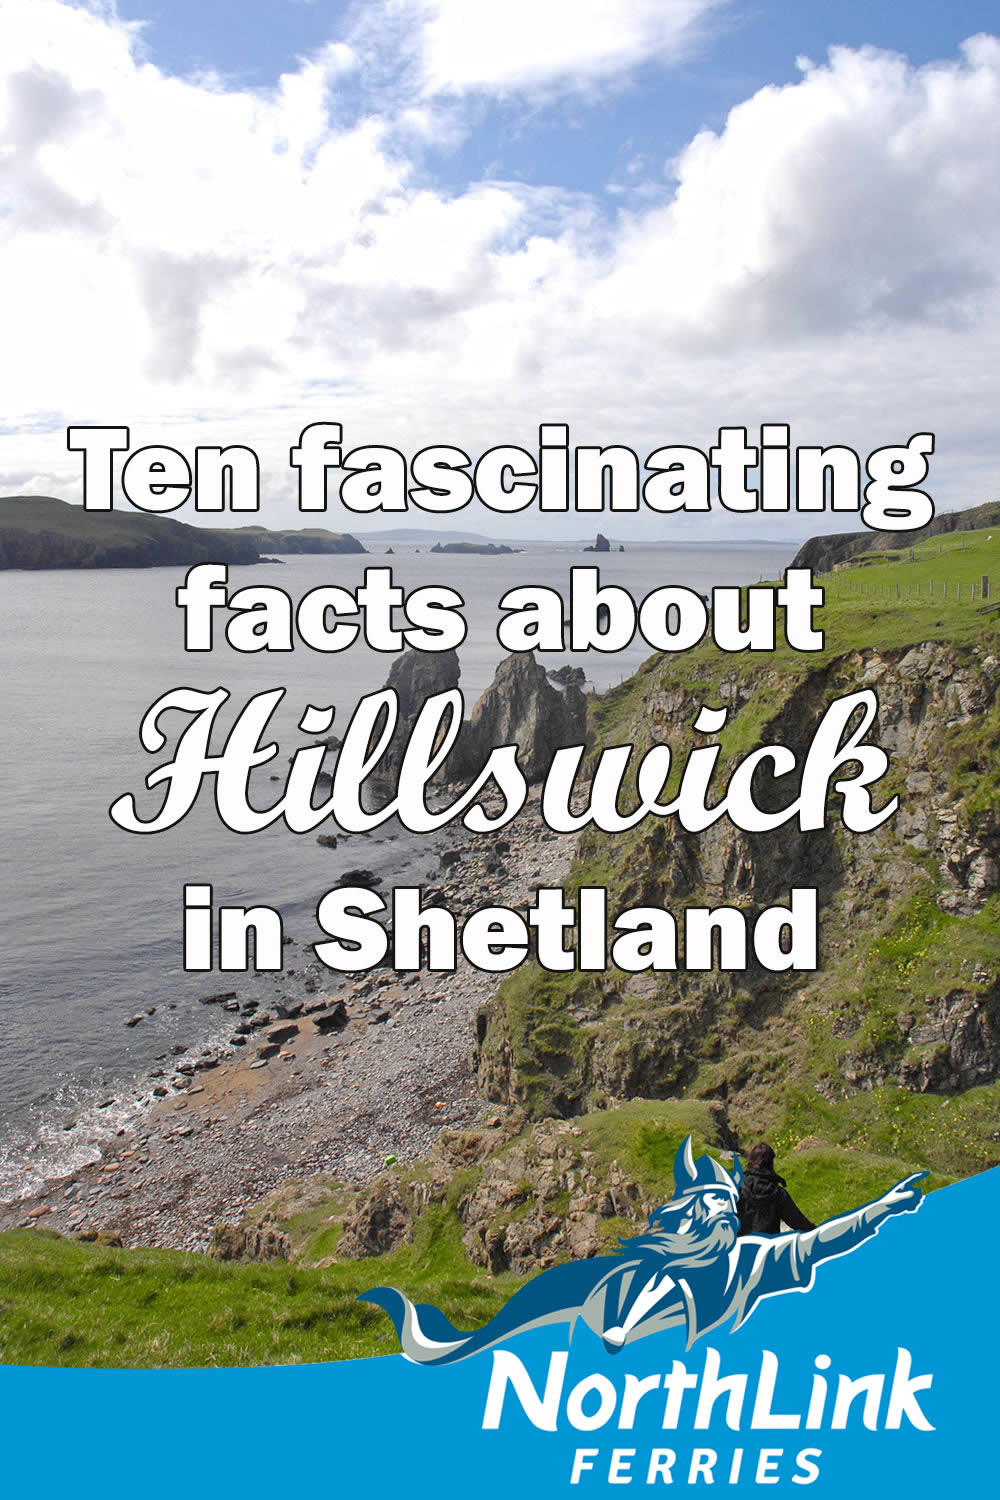 10 Fascinating Facts about Hillswick